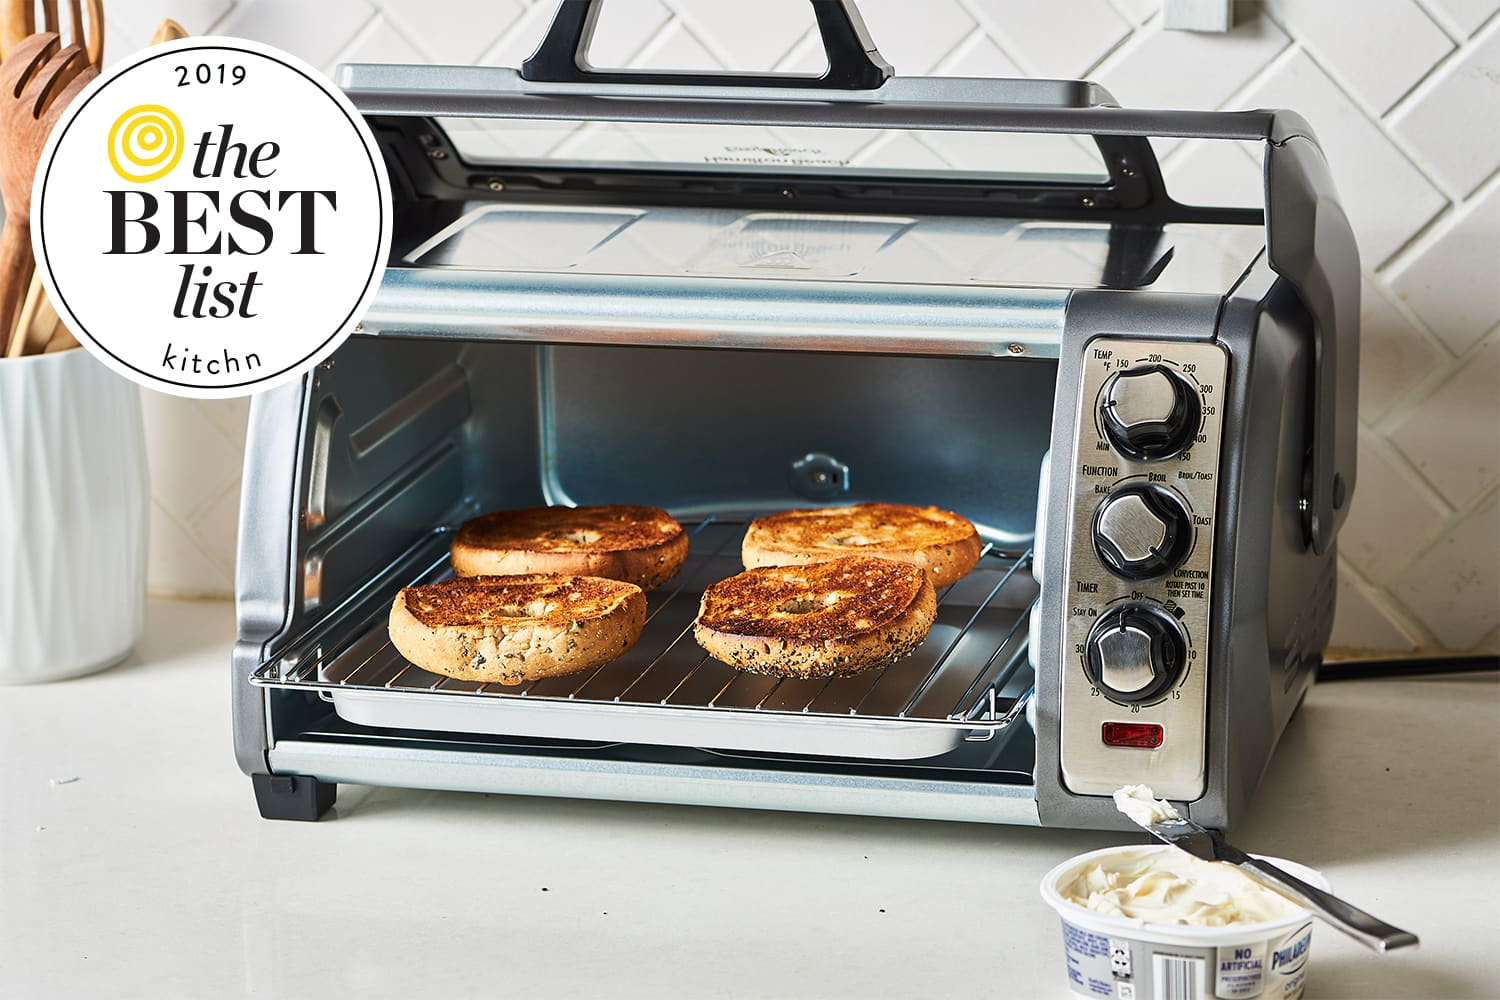 I've Tested Nearly Every Toaster Oven on the Market. These Are the 4 Best for Most Home Cooks.